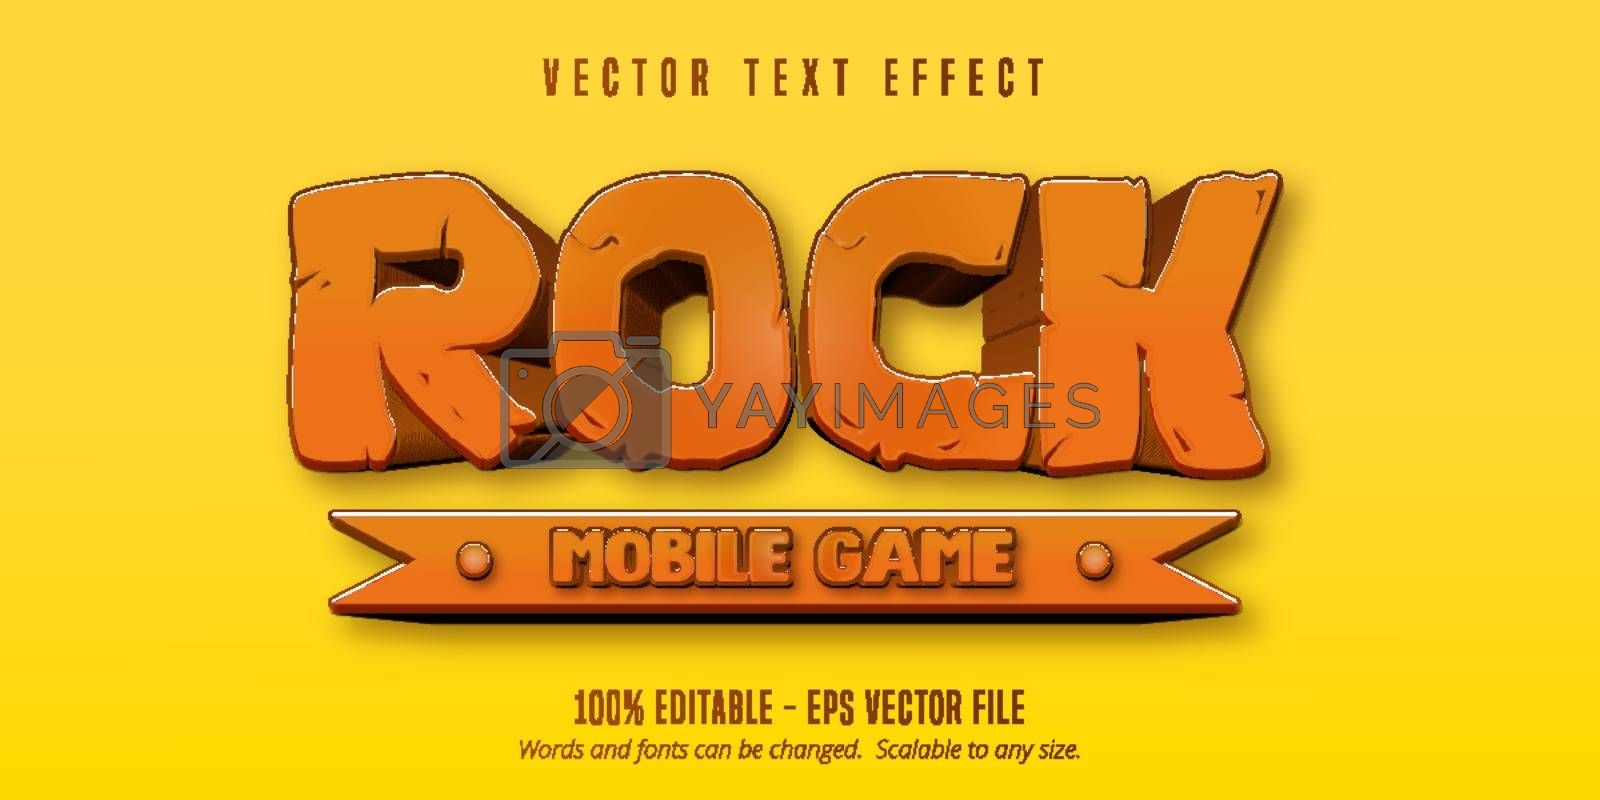 Rock mobile game text, cartoon game style editable text effect